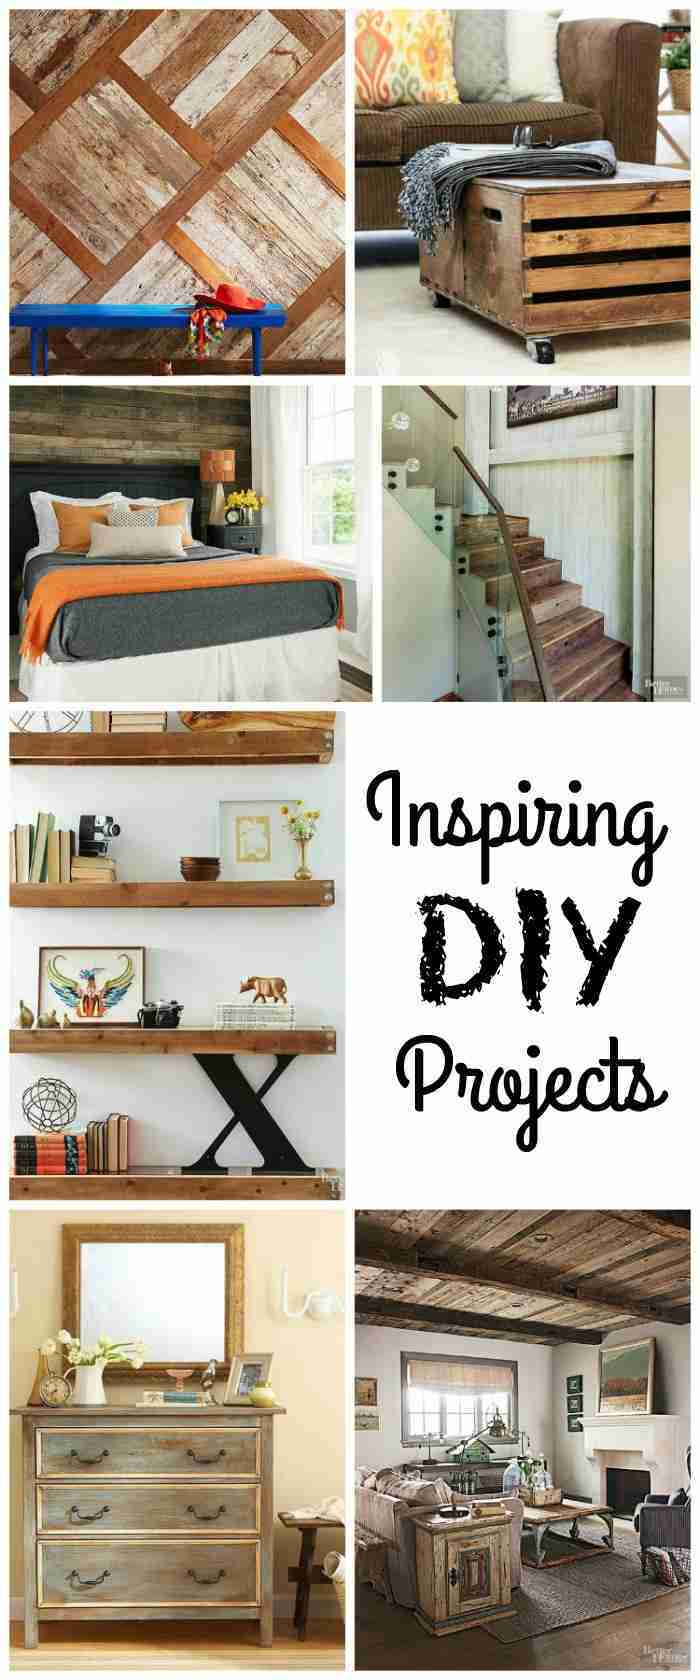 Inspiring Home Decor Ideas | The Mindful Shopper